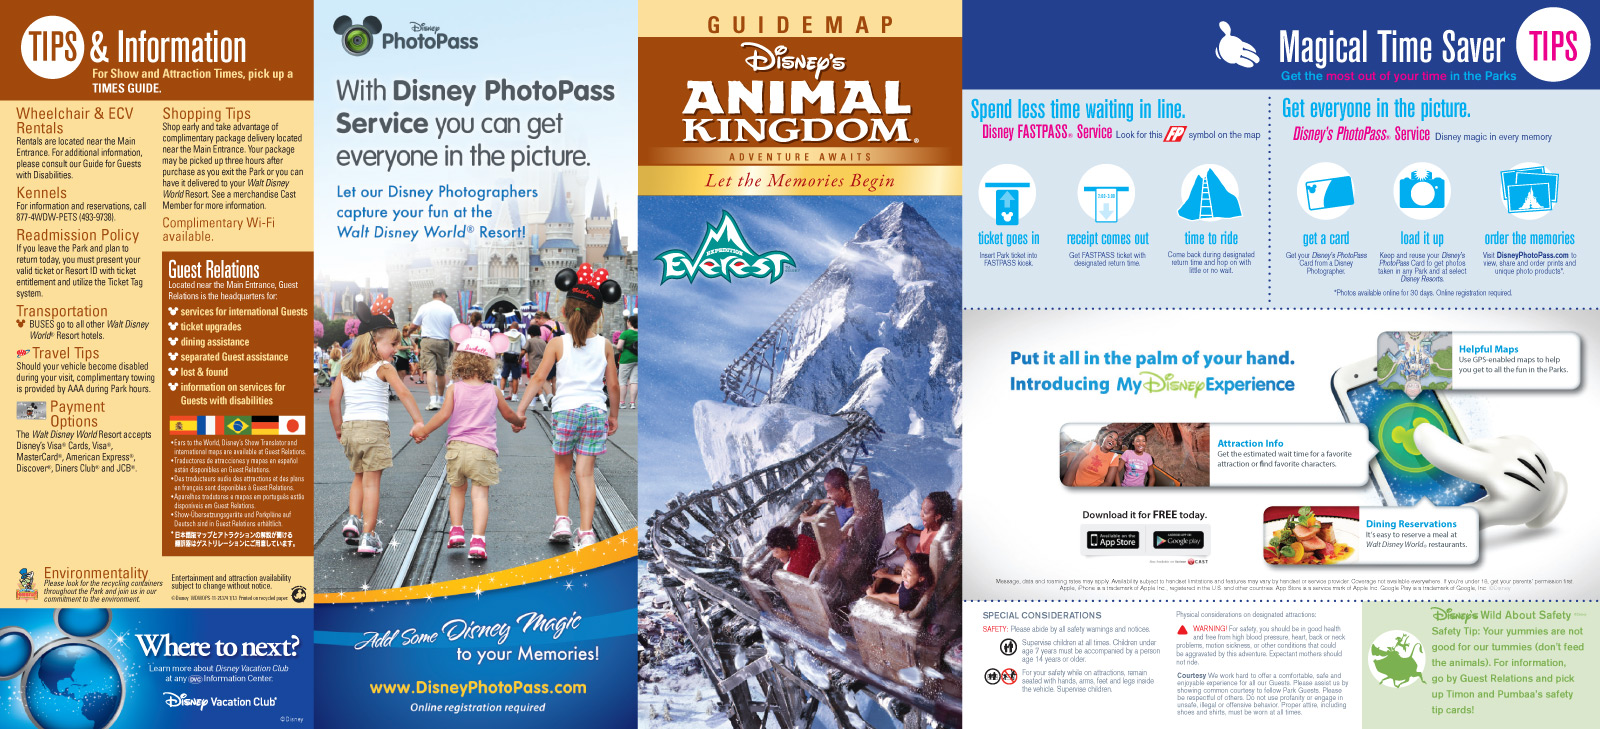 All New 2013 Walt Disney World Park Maps - Chip and Co